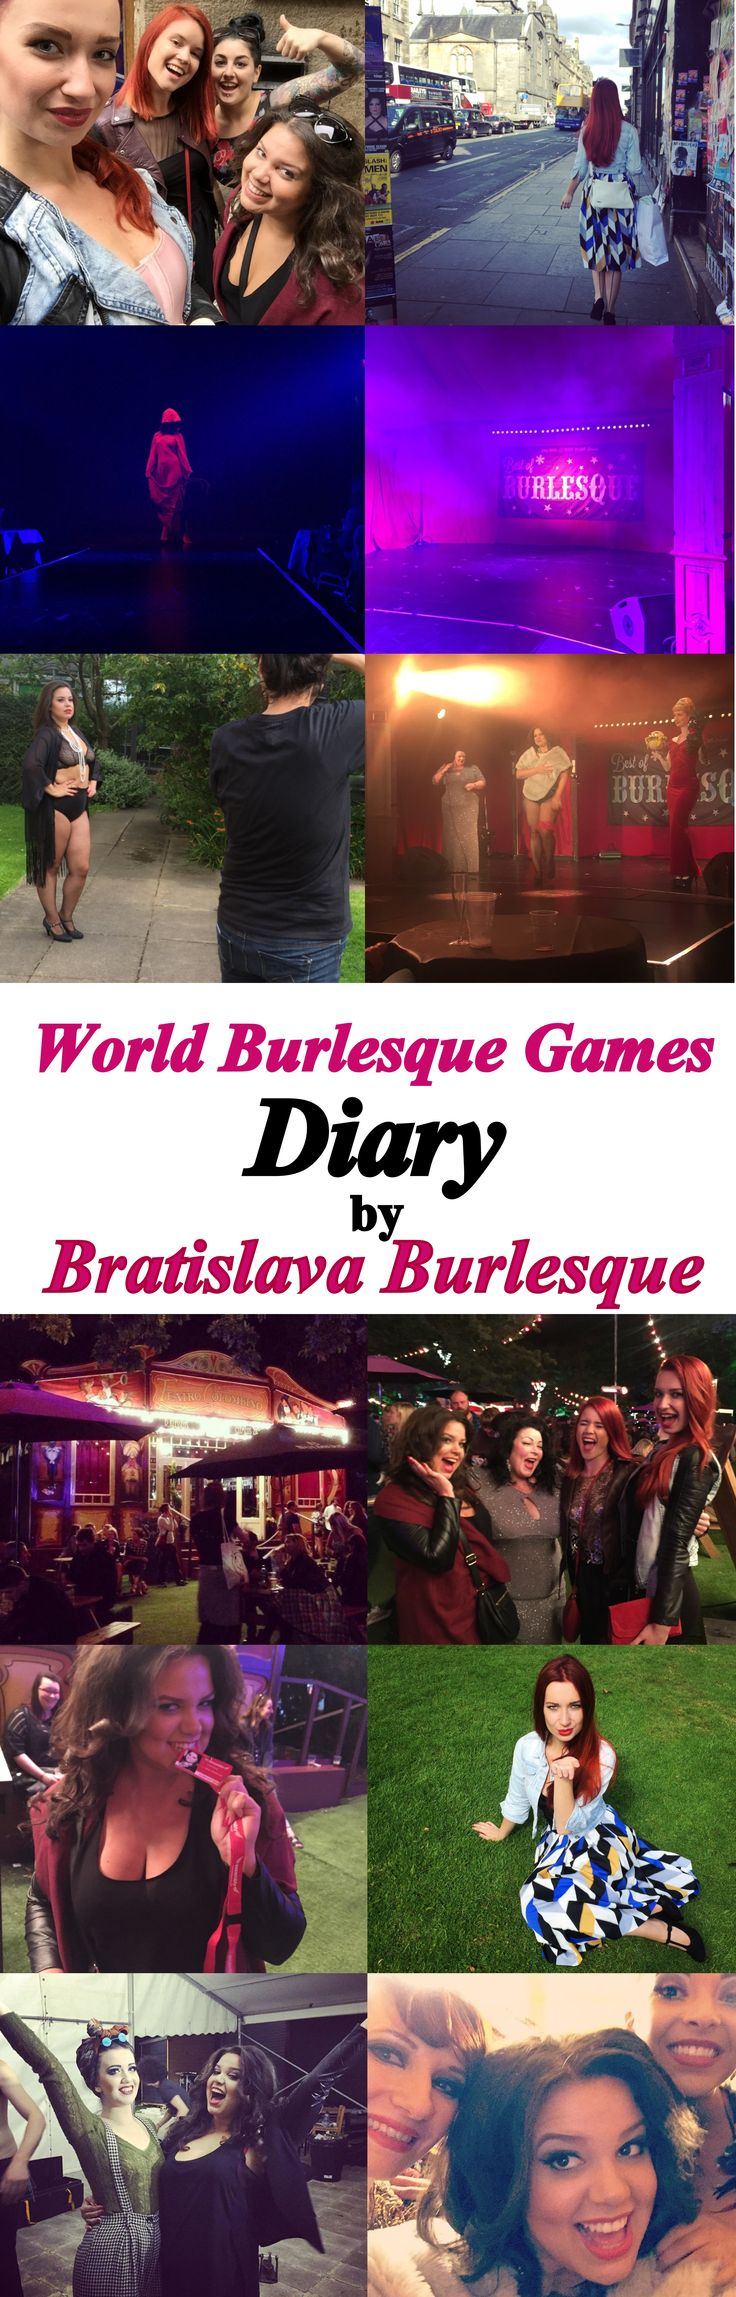 We had a lovely time in Edinburgh at Best of Burlesque (World Burlesque Games)! It was nice to meet Aurora Galore, Kiki Deville, Eliza Delite, Whiskey Falls, Silk Desiré, Lou Safire, Cece Siclair and many other talented performers. Thank you Chaz Royal and Betty D'Light for inviting us! <3 Read full story at our blog <3